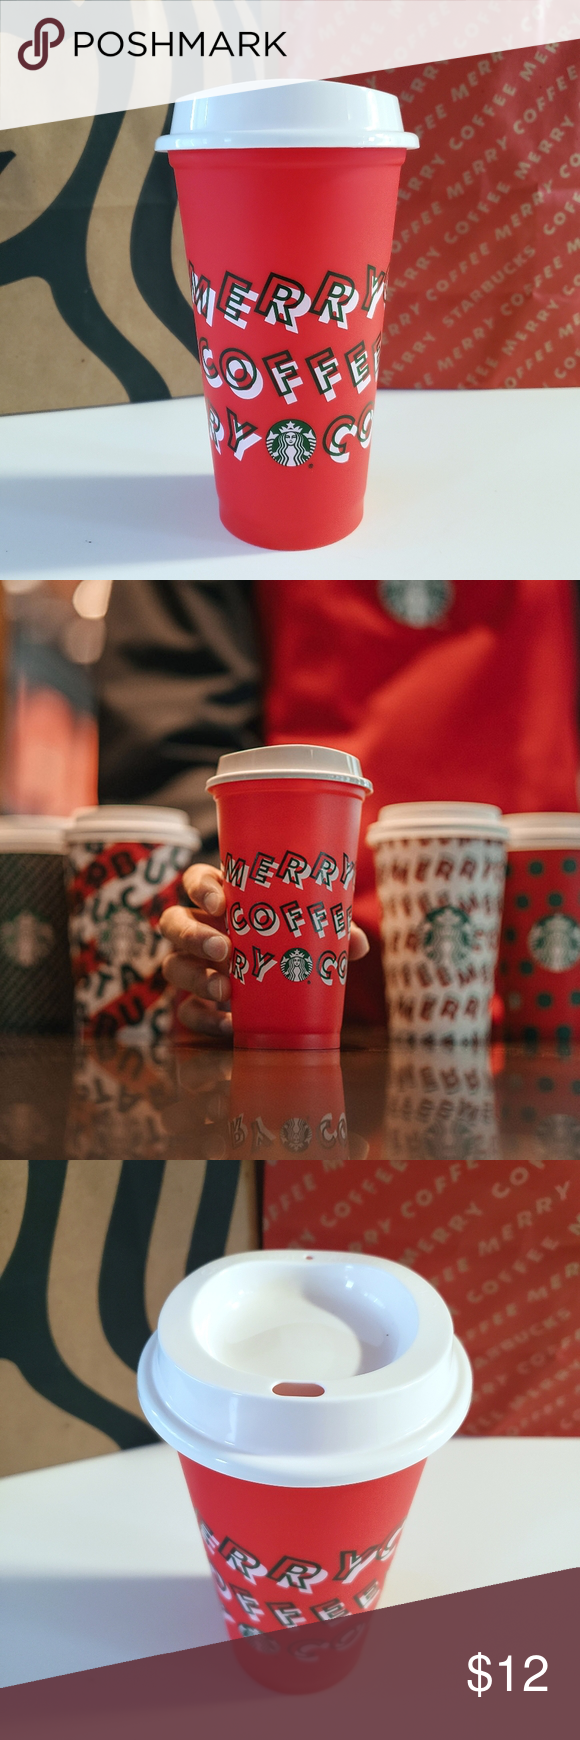 NEW Starbucks Holiday 2019 Reusable Hot Drink Cup NWT